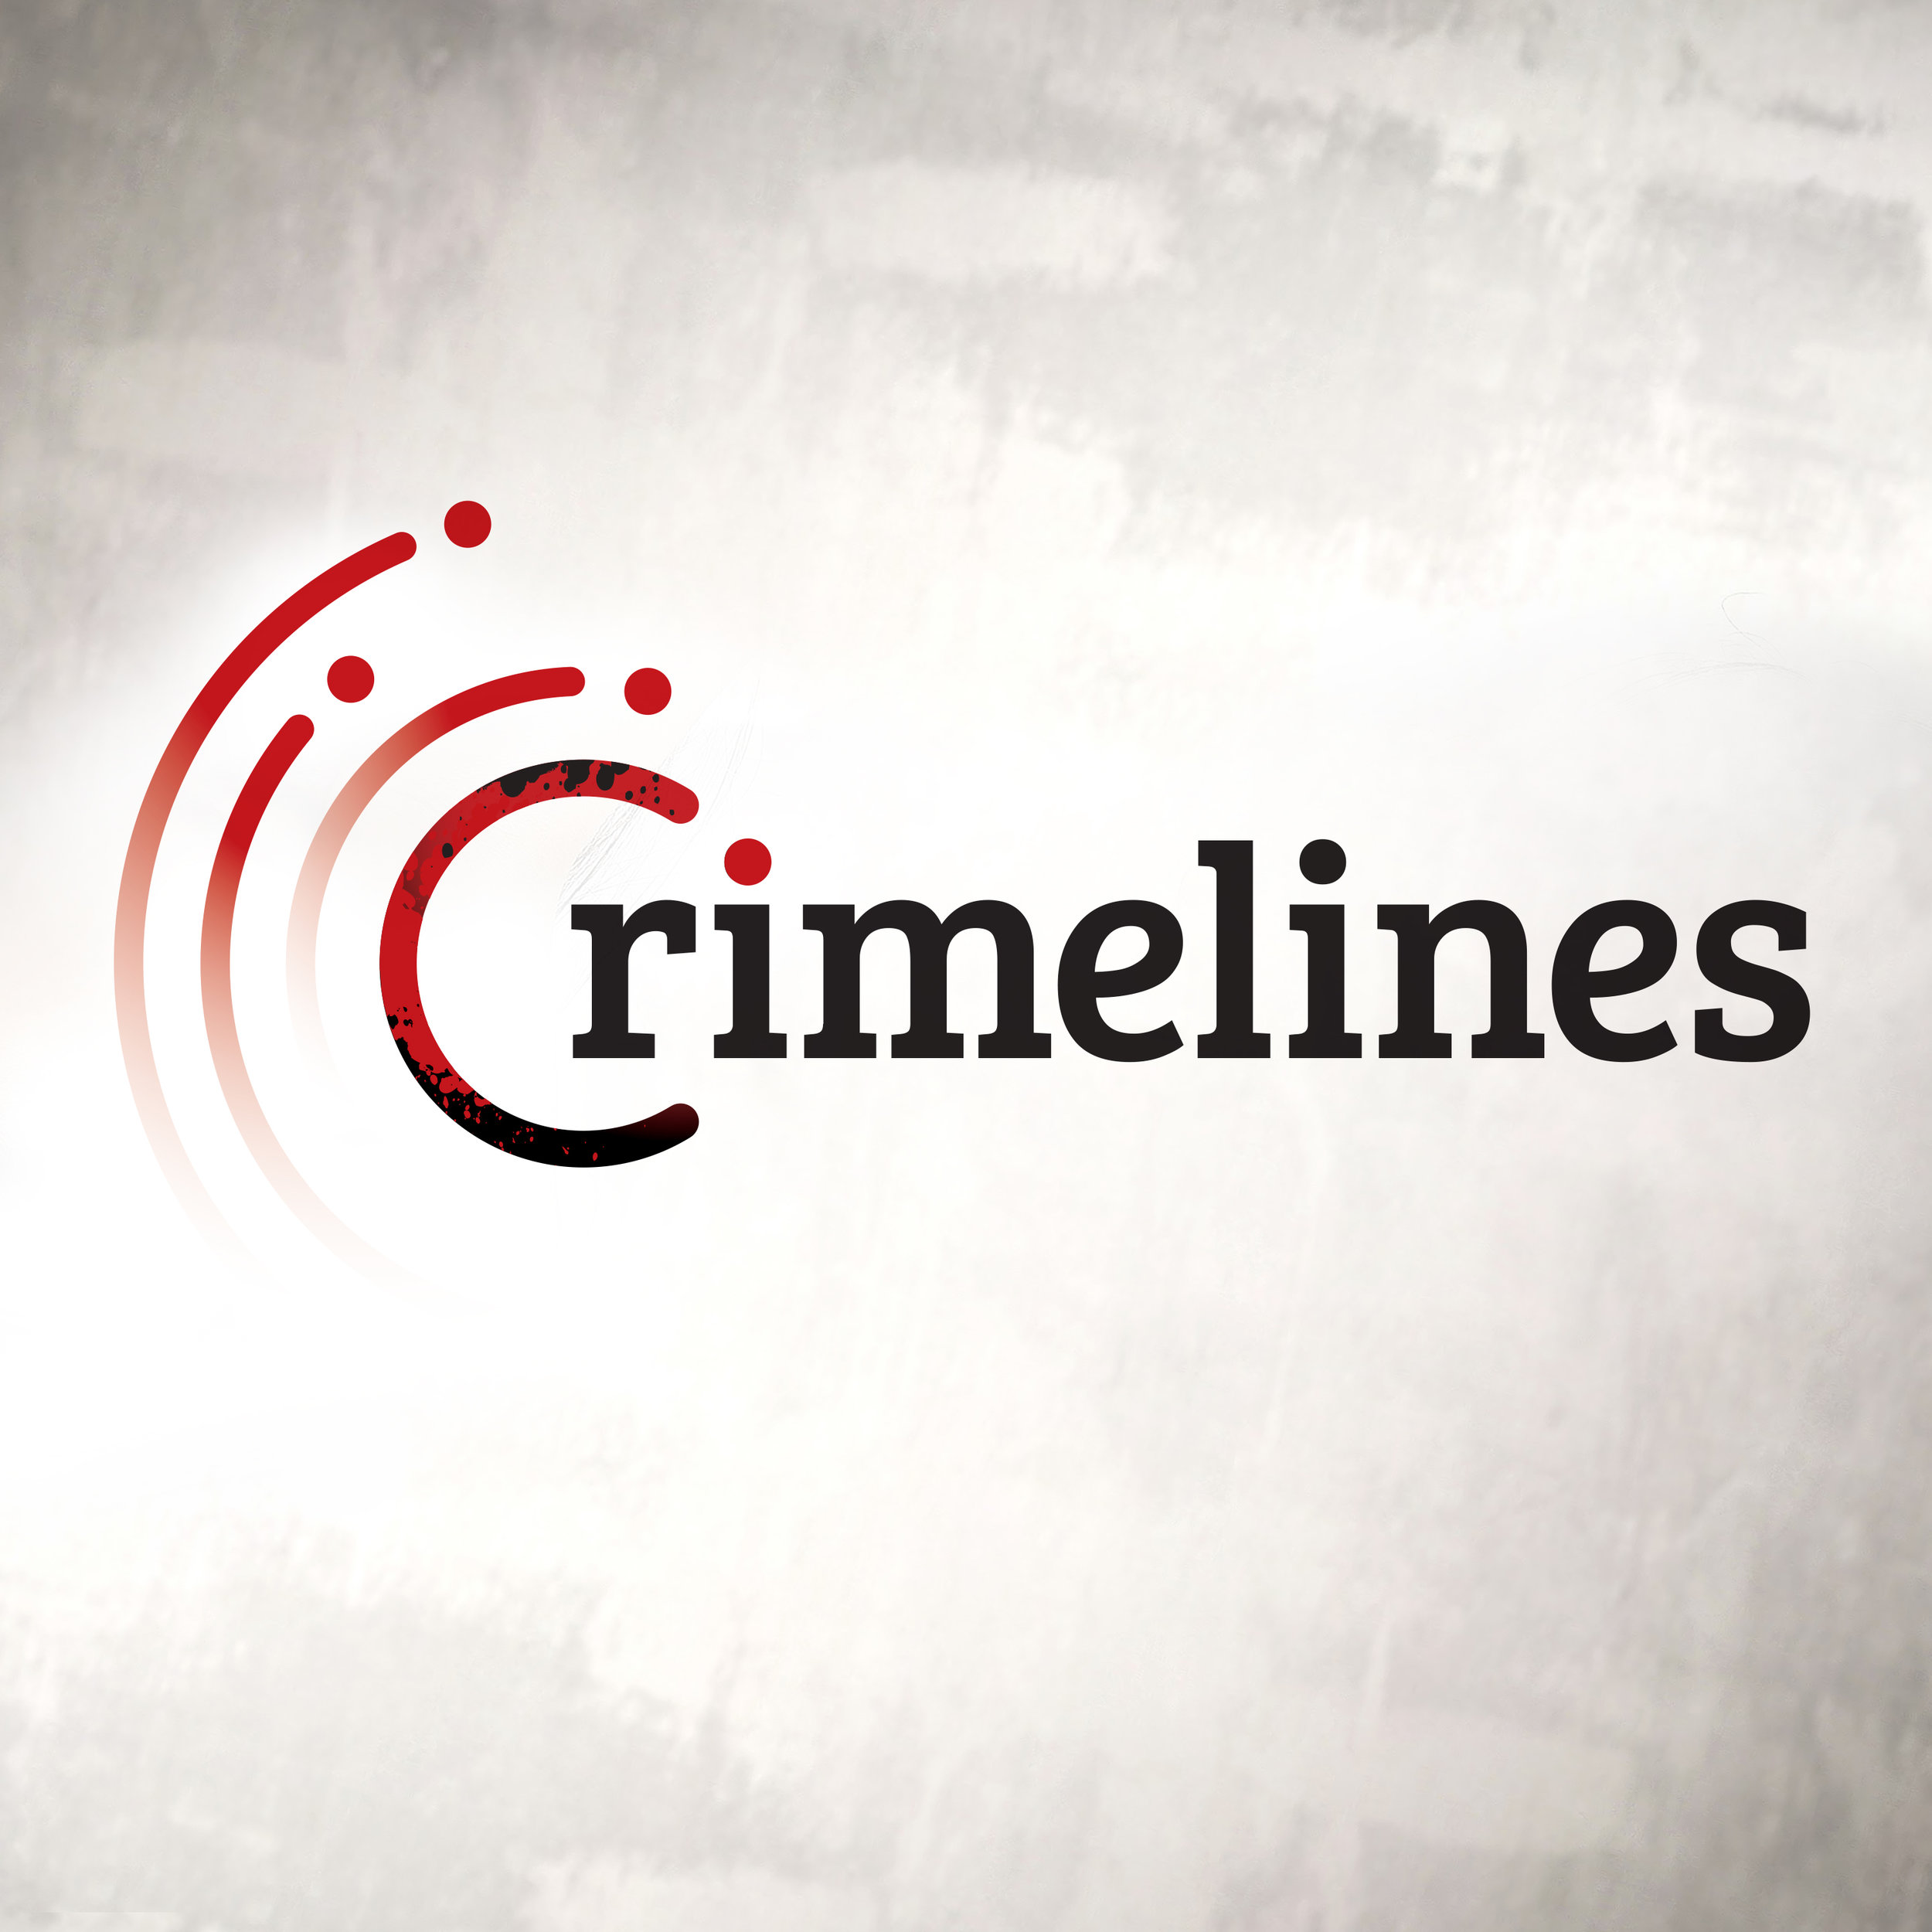 Crimelines - Crimelines walks you through true crime events, pairing captivating tales with clear storytelling. Host Charlie brings in appropriate historic and cultural context to look beyond what happened and consider why it happened.